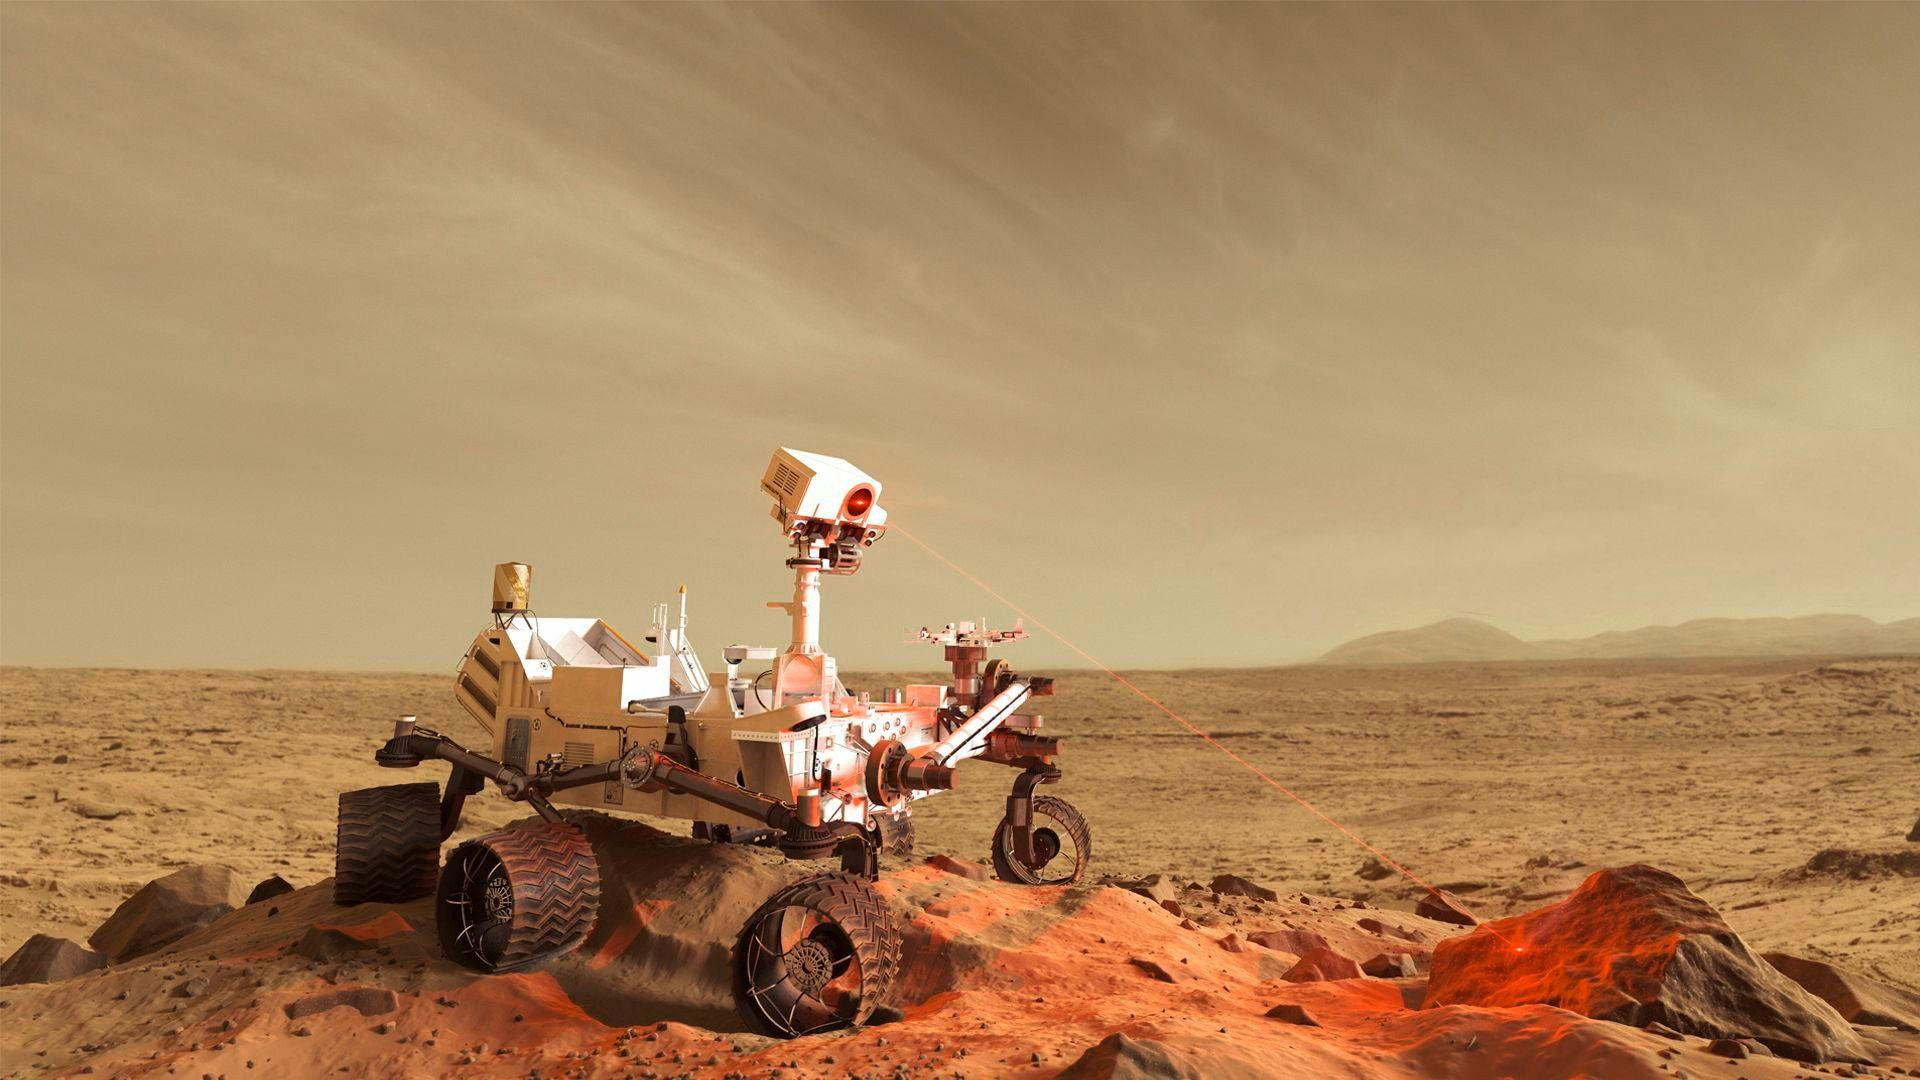 mars rover images - HD 1920×1080